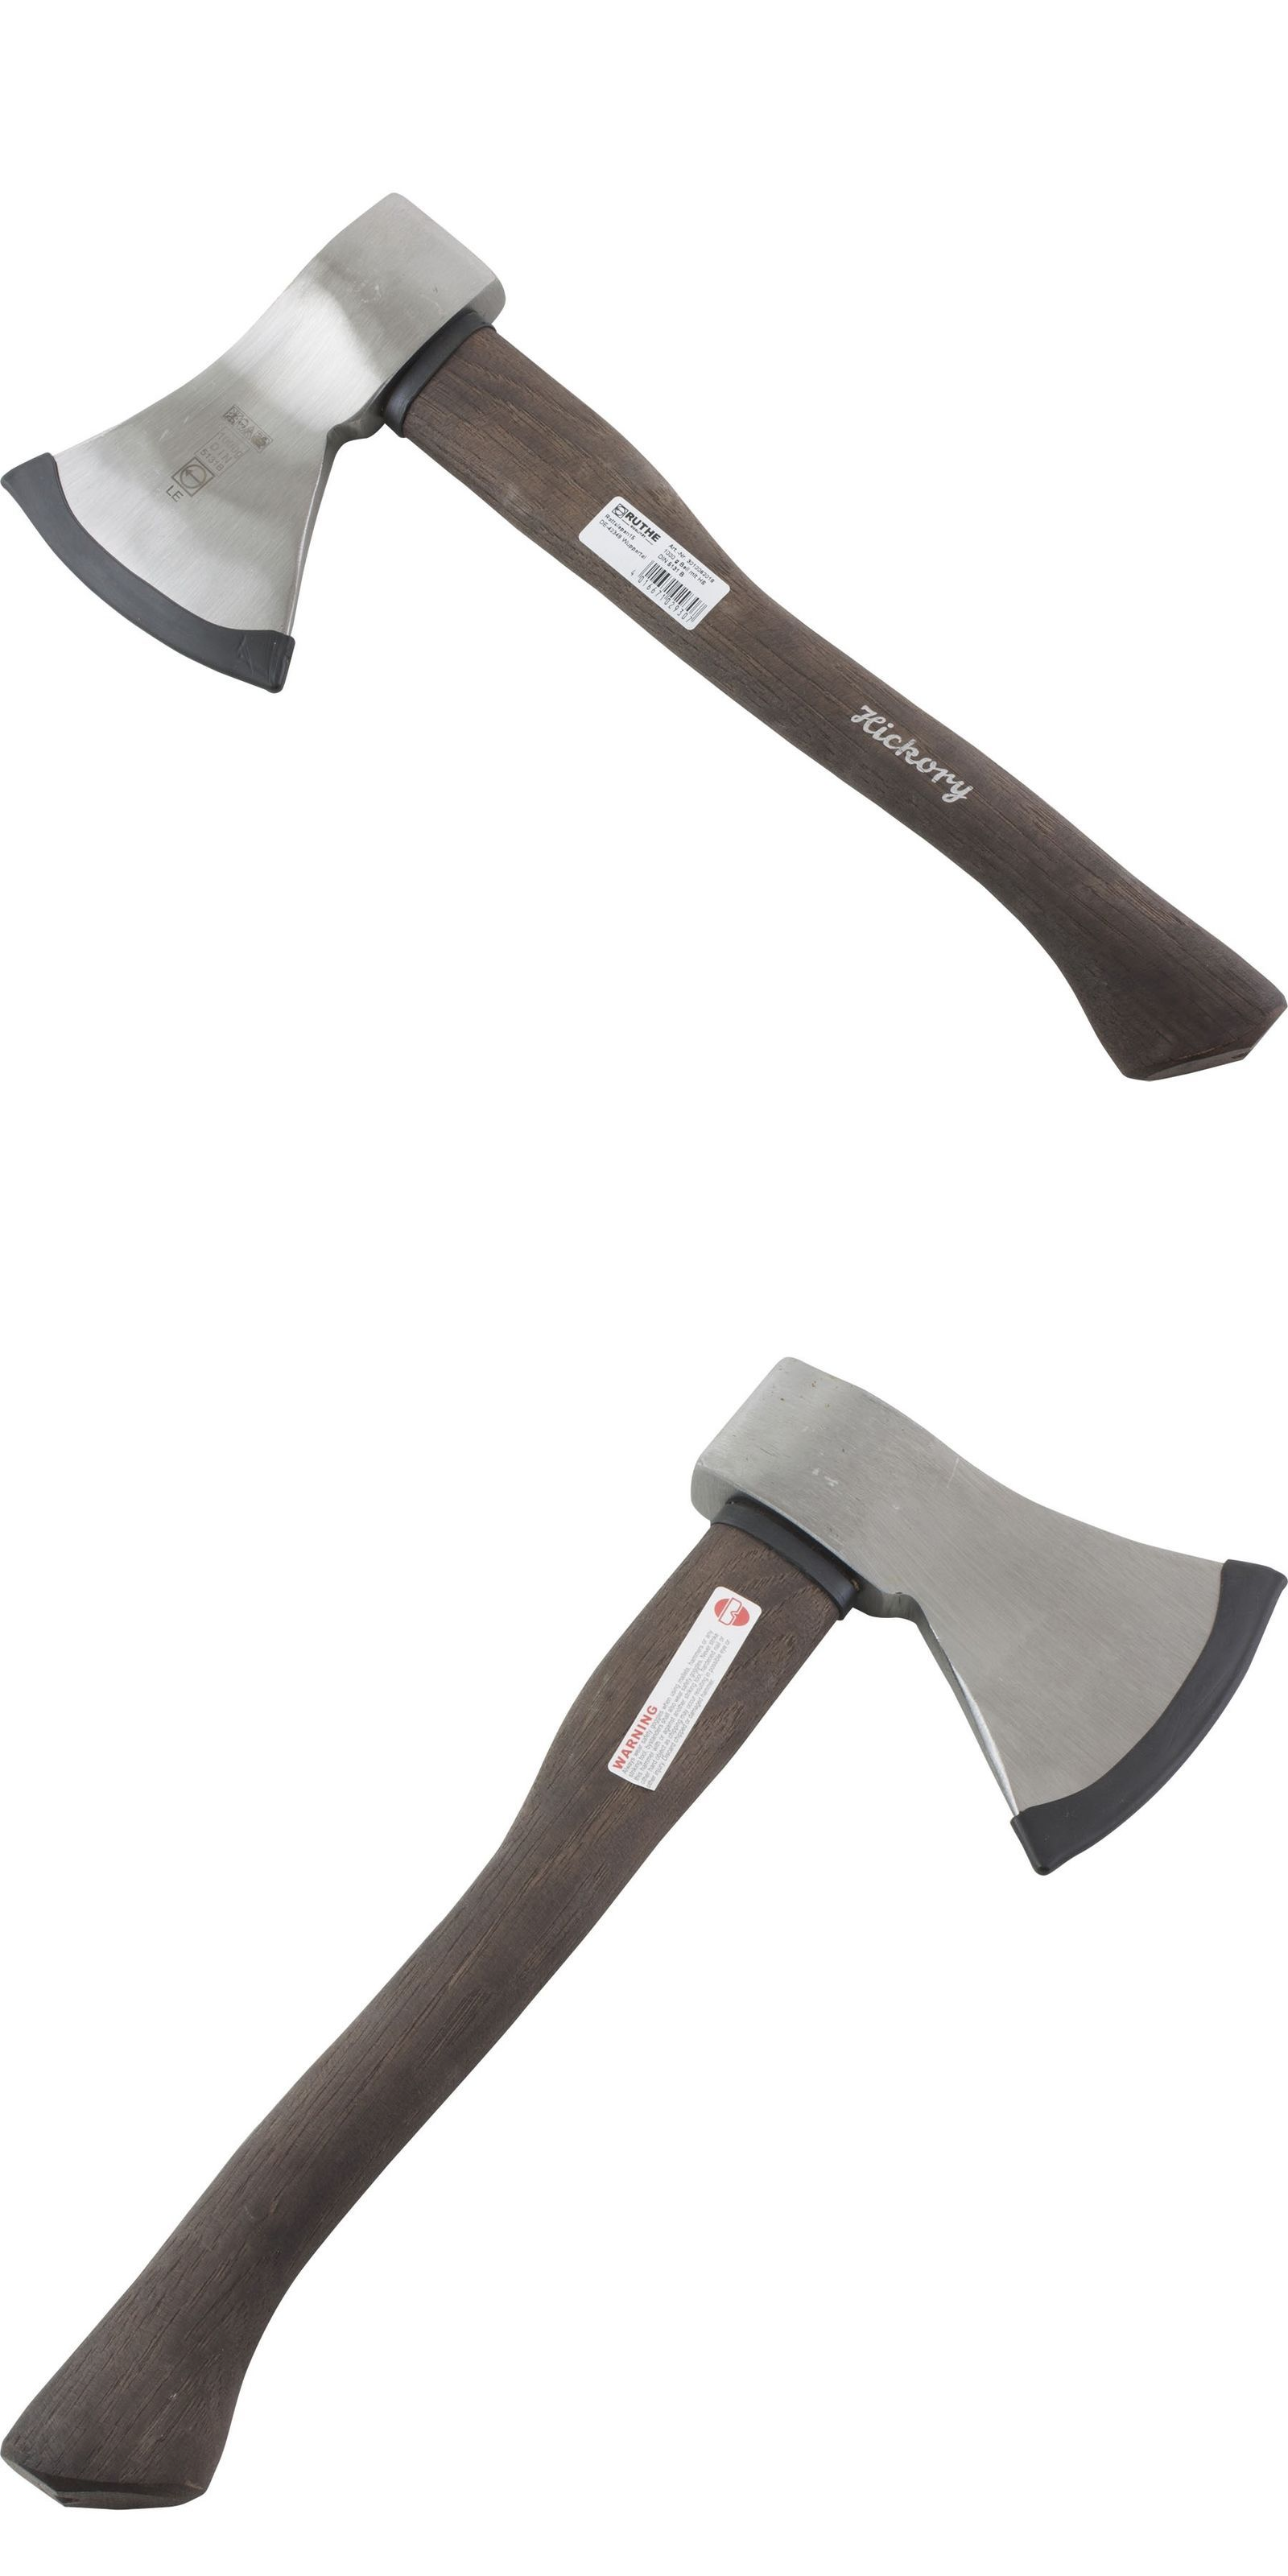 Camping Hatchets and Axes 75234: Ruthe German Hatchet Axe With